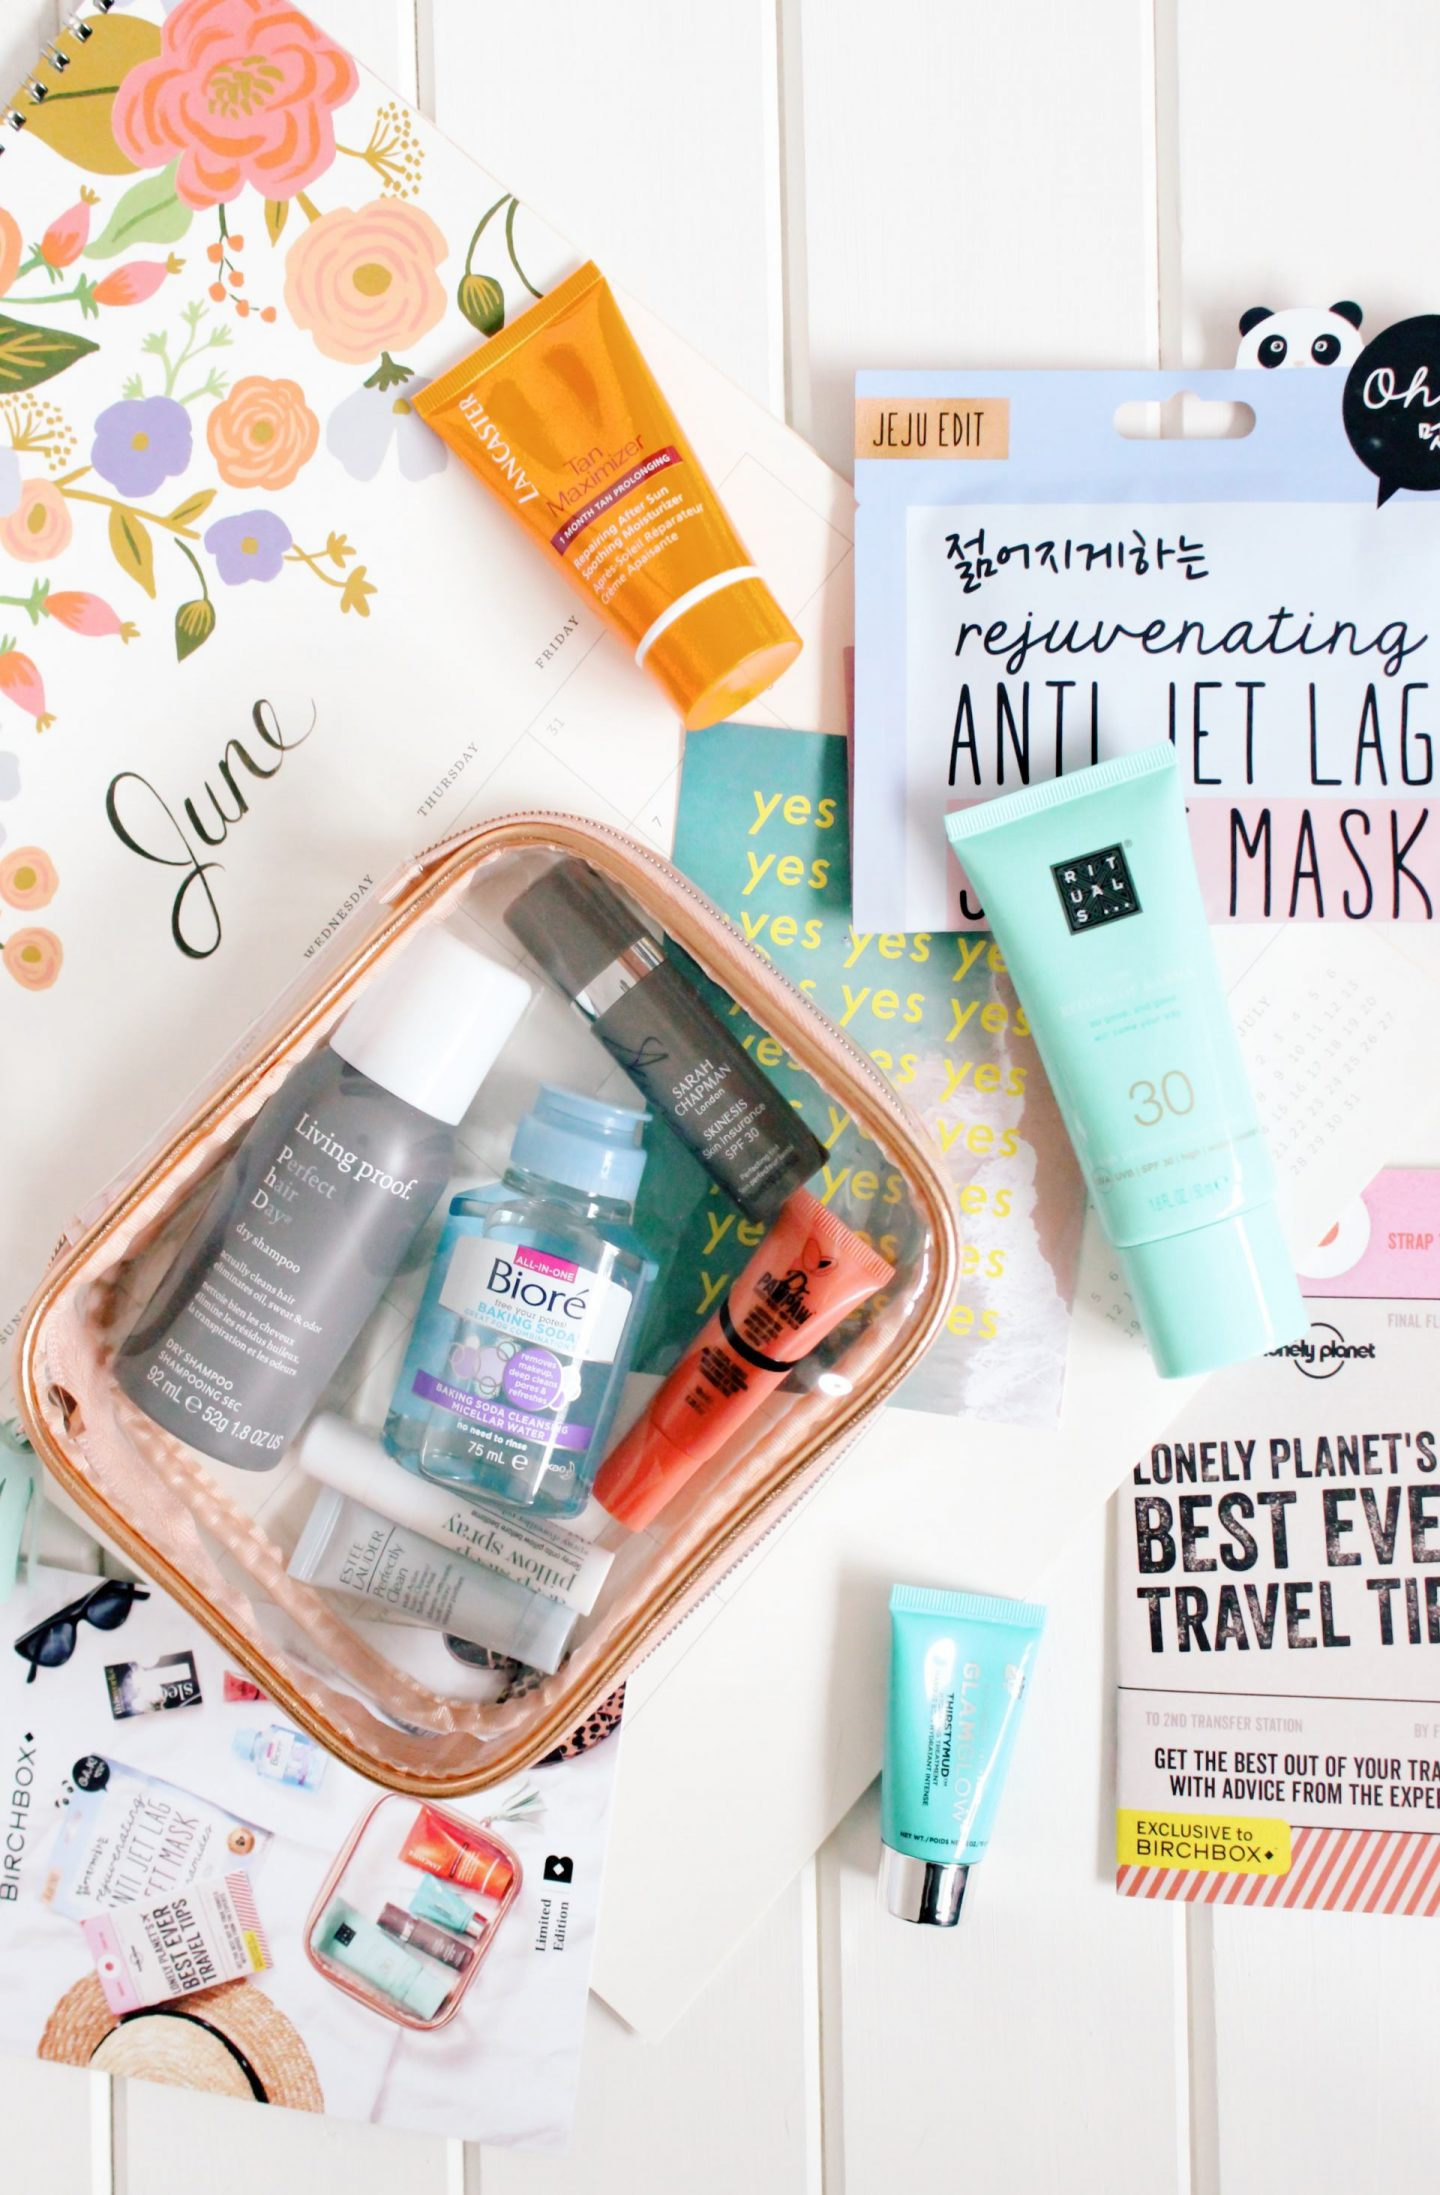 Birchbox Jet Set Beauty Edition